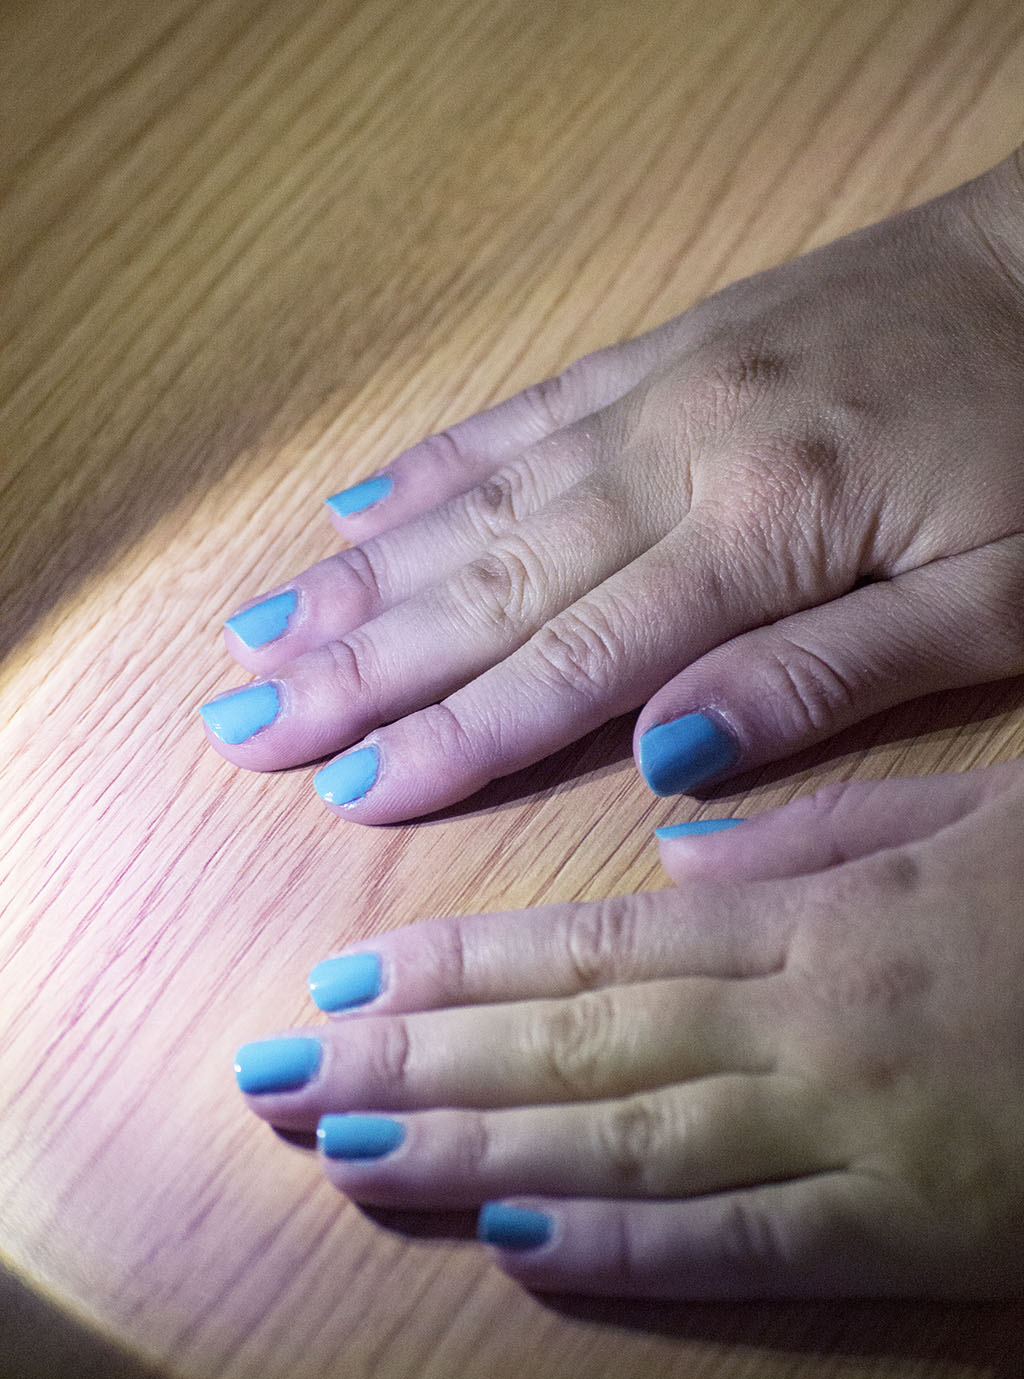 Gel manicures save students nail polish troubles | The Collegian